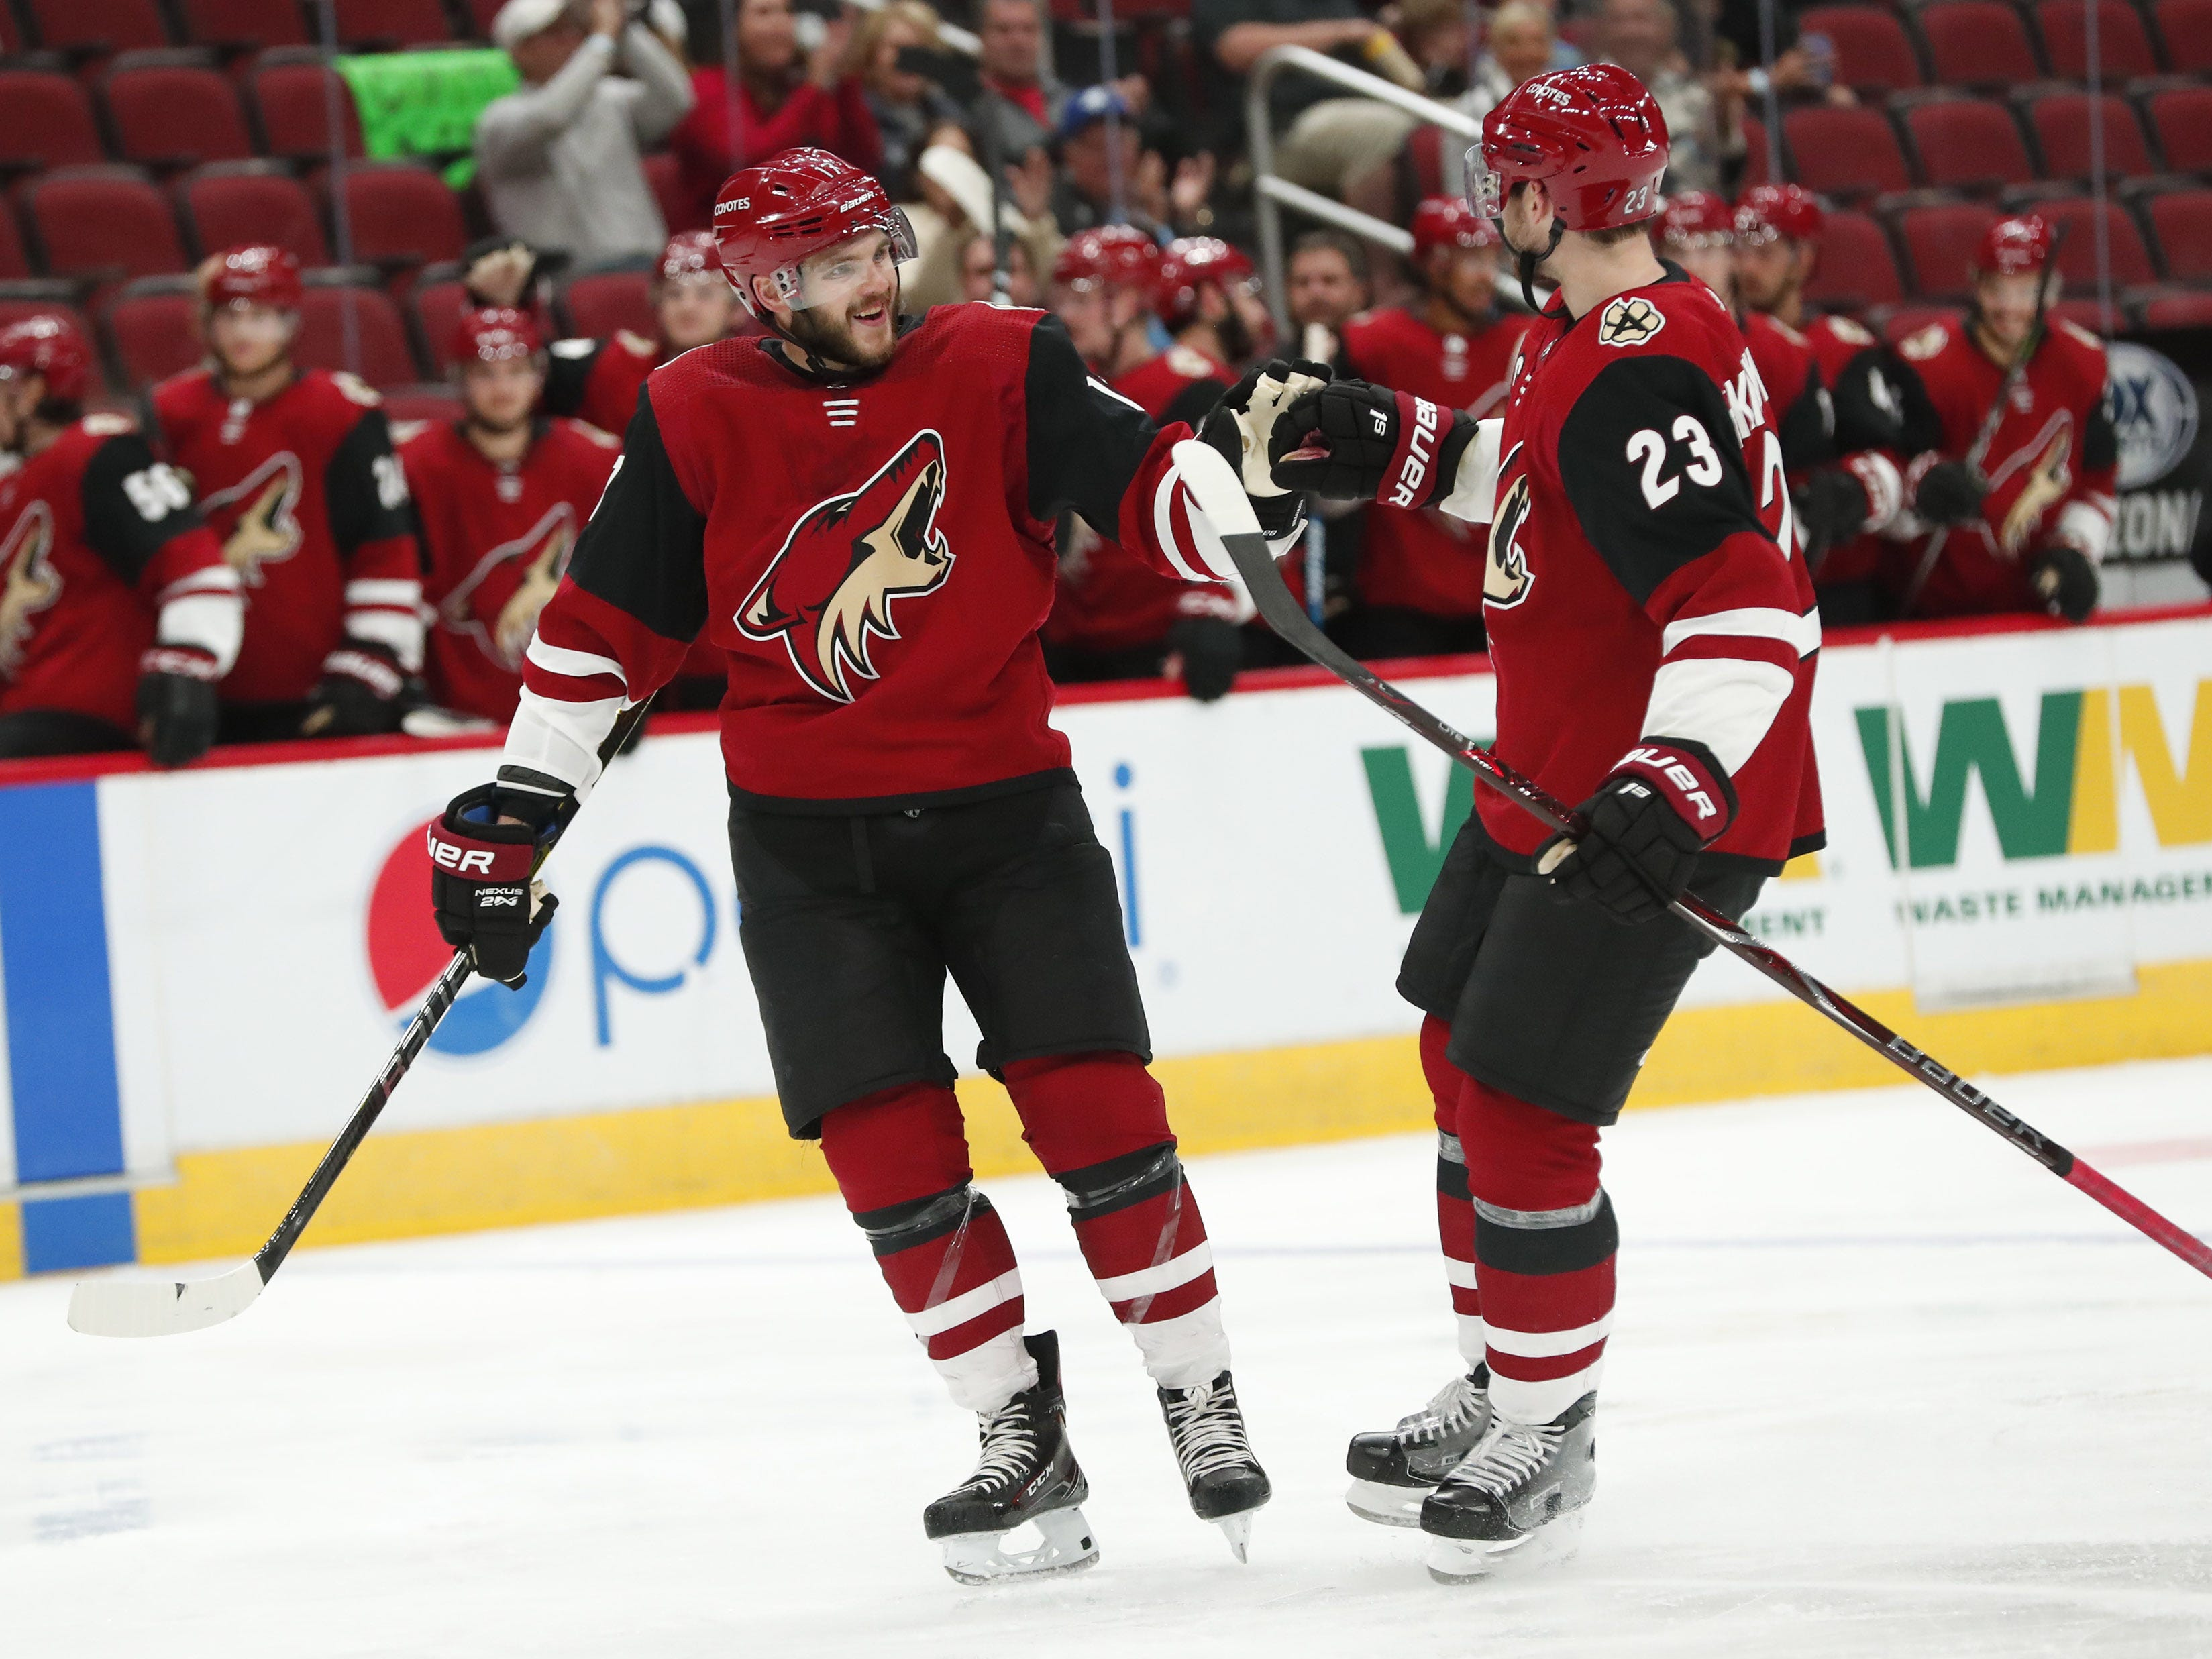 Arizona Coyotes center Alex Galchenyuk (17) and Arizona Coyotes defenseman Oliver Ekman-Larsson (23) celebrate a goal against the Los Angeles Kings in the second period during preseason NHL action at Gila River Arena in Glendale, Ariz. September 18, 2018.